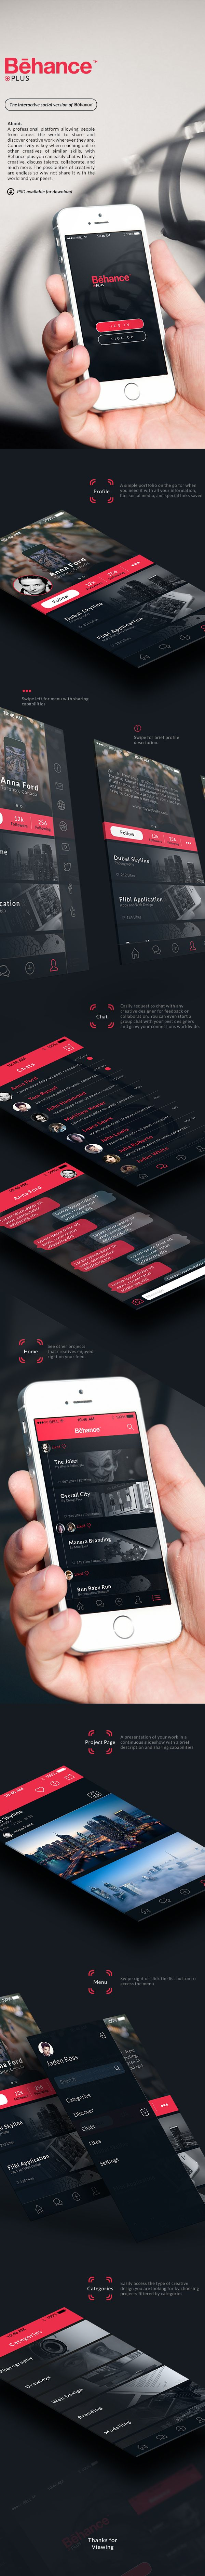 Behance Plus - App Design Concept | Abduzeedo Design Inspiration